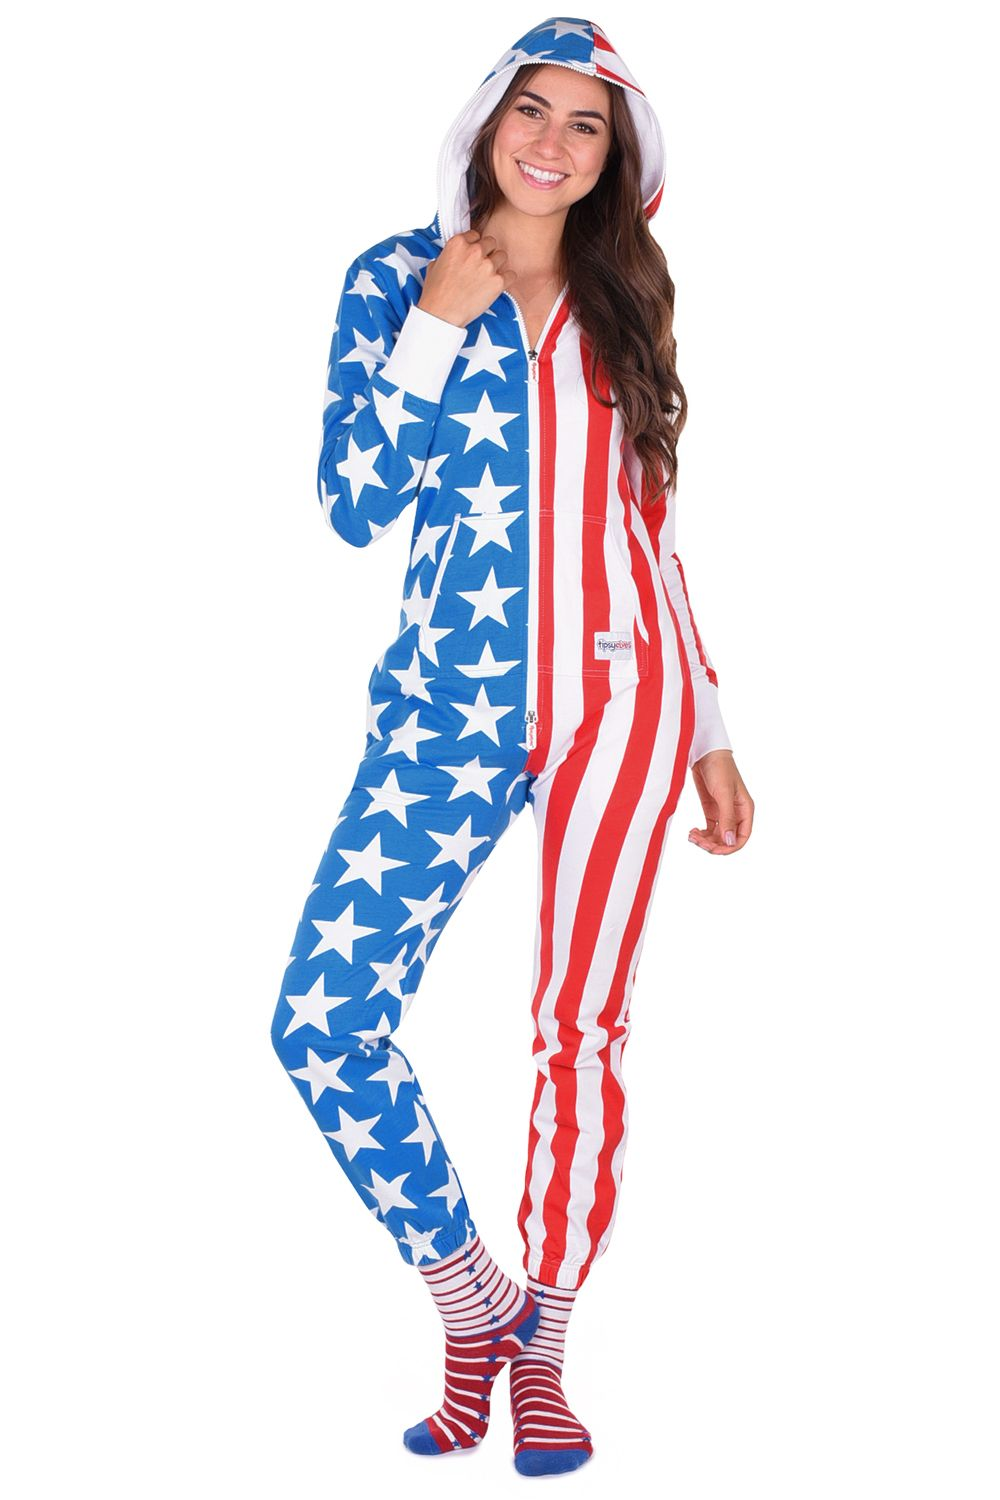 605624ddd Women's American Flag Jumpsuit | Tipsy Elves. July 4th, Stars and Stripes,  Patriotic Outfit, Summer